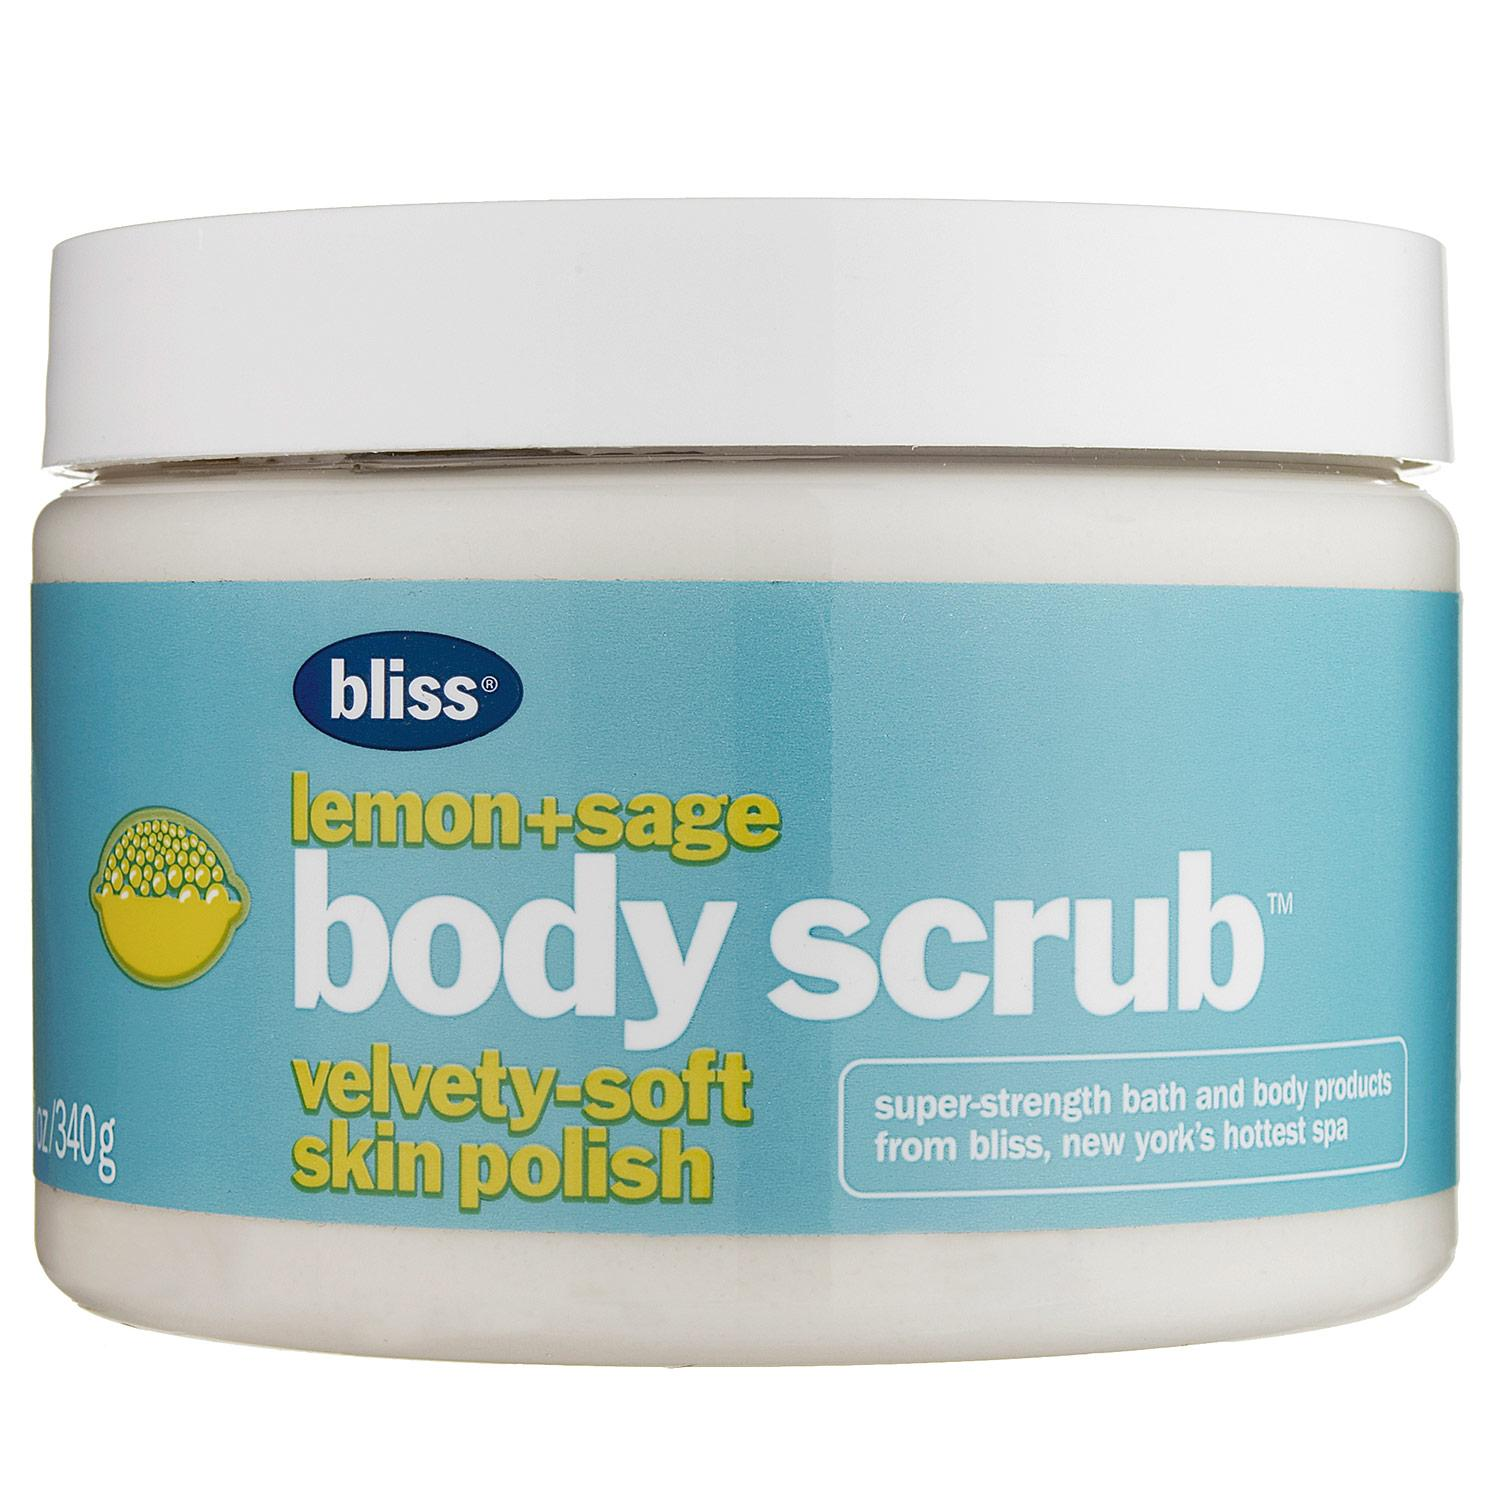 Lemon+Sage Body Scrub